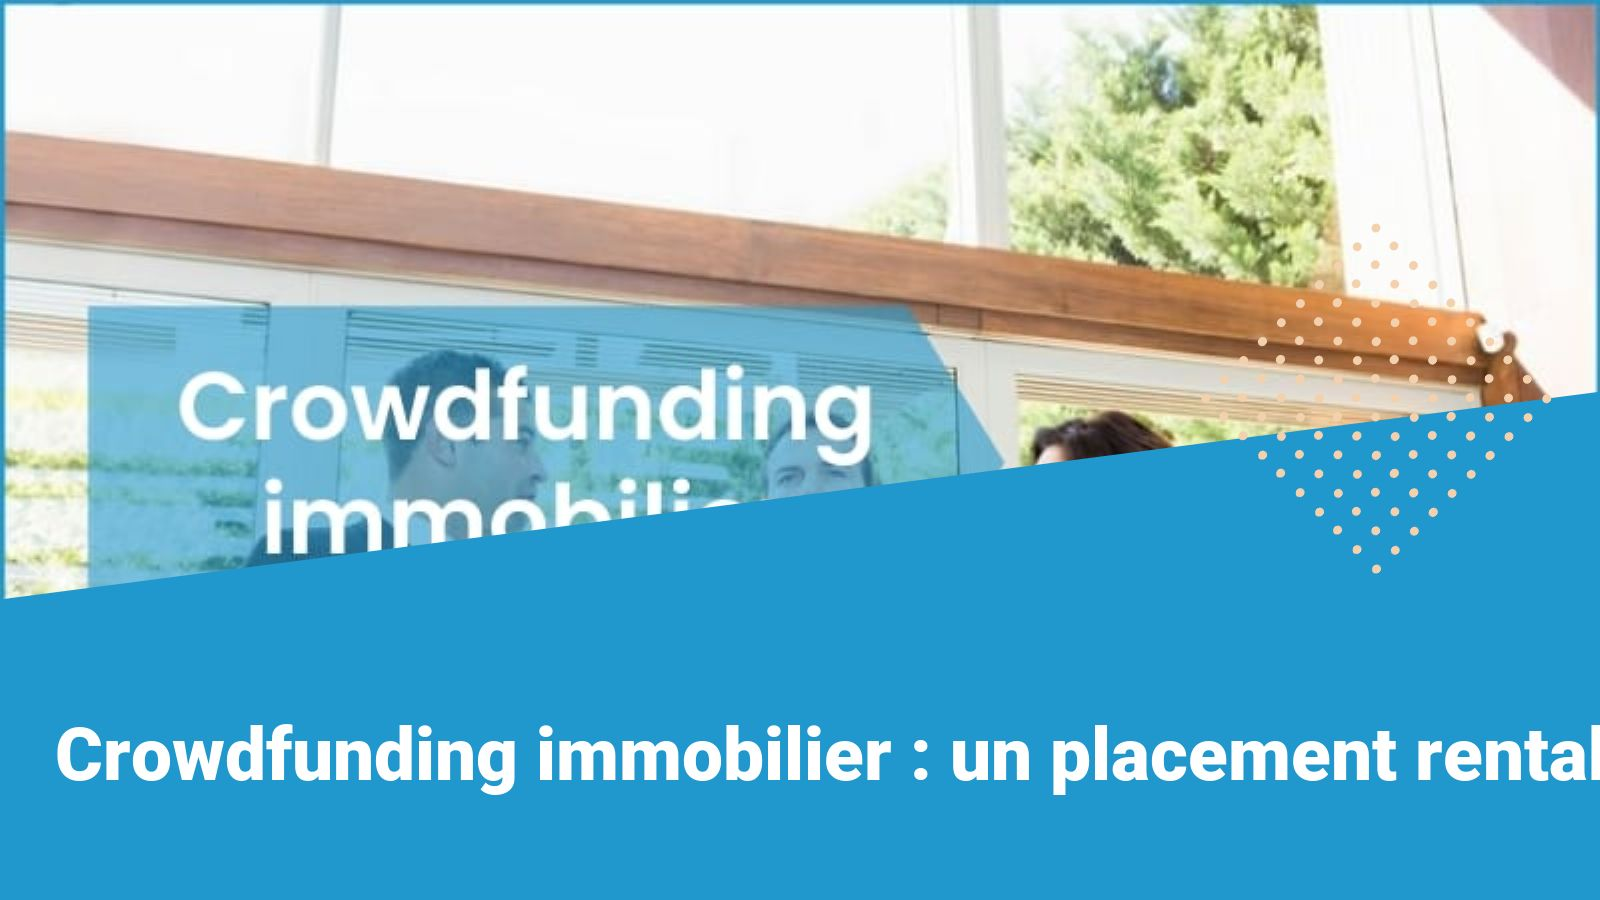 crowdfunding immobilier croissance